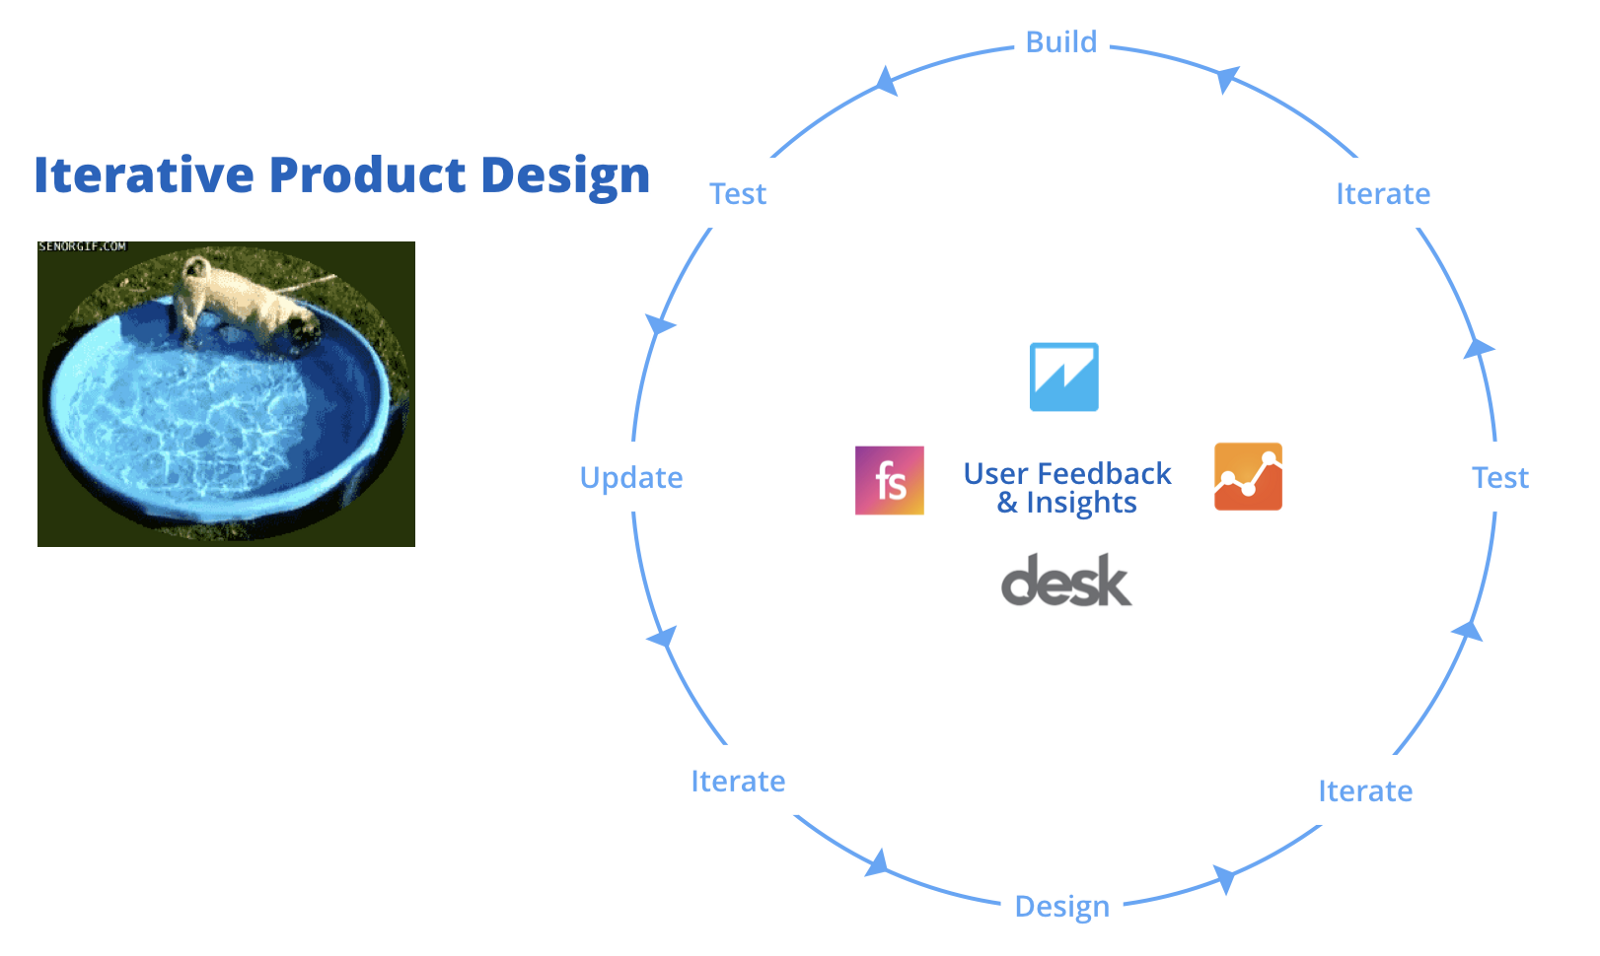 iterative-product-design.png